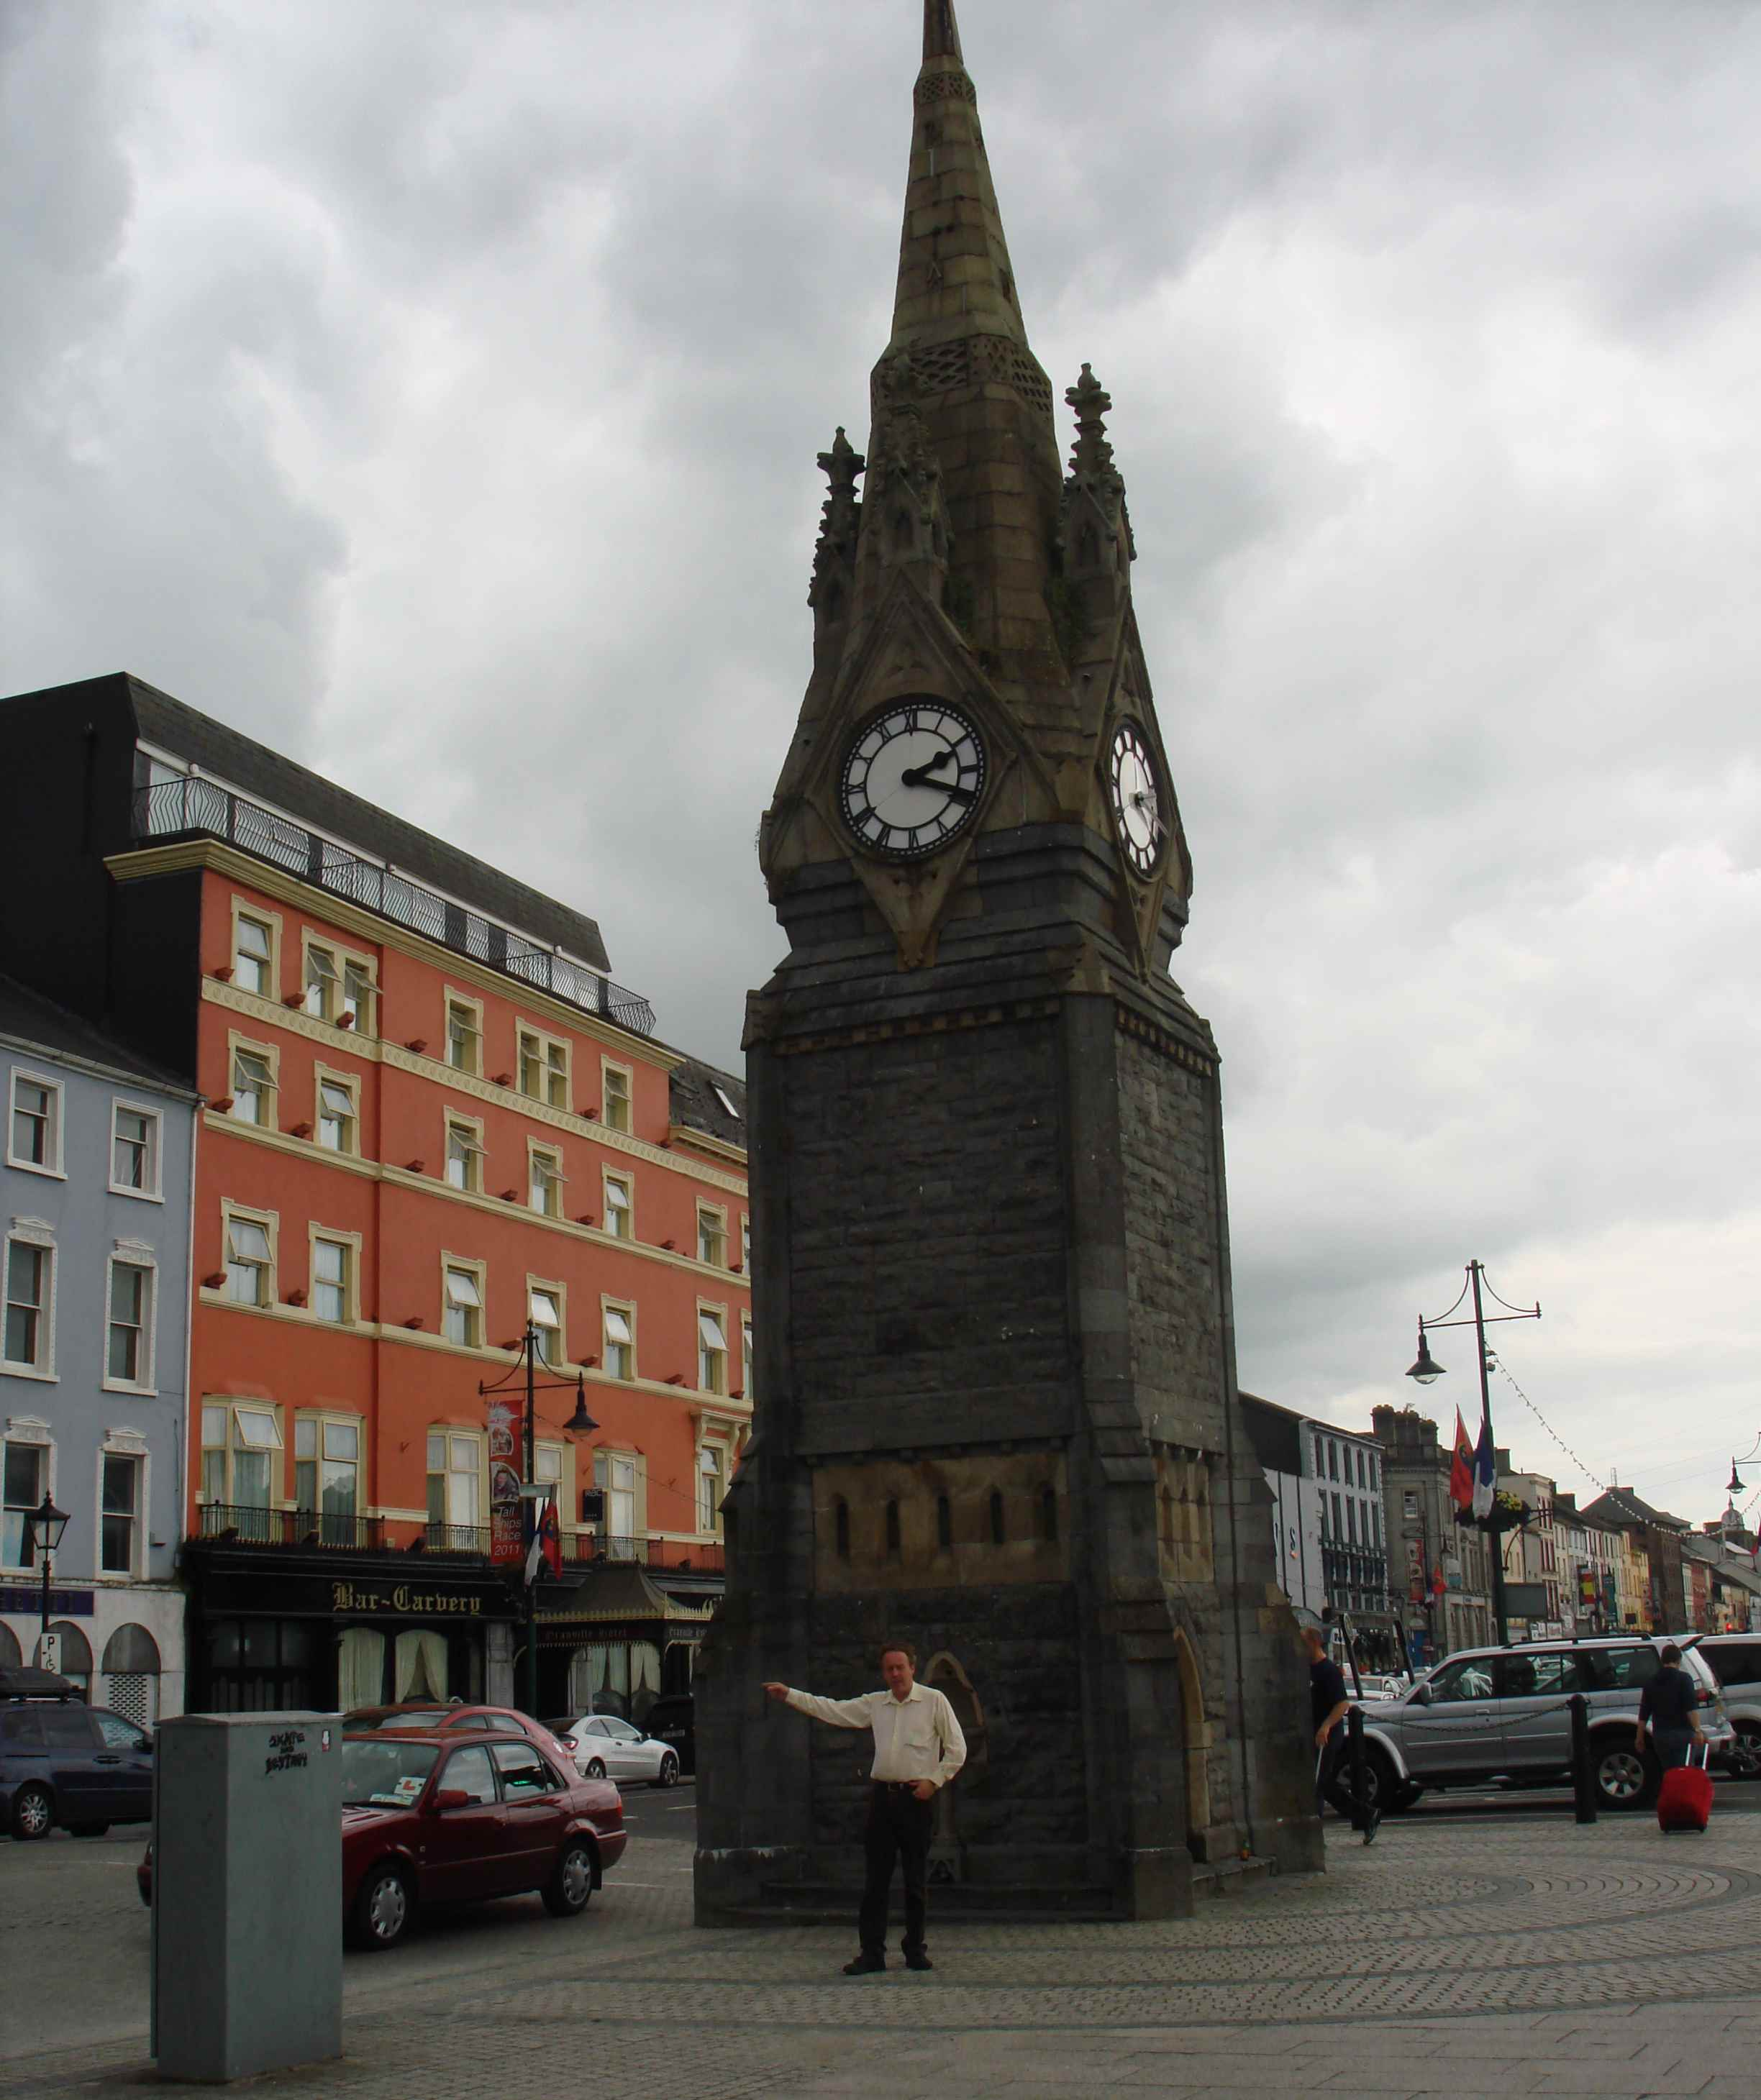 Clock Tower on Jack Burtchaell's Walking Tour in Waterford City, Ireland.